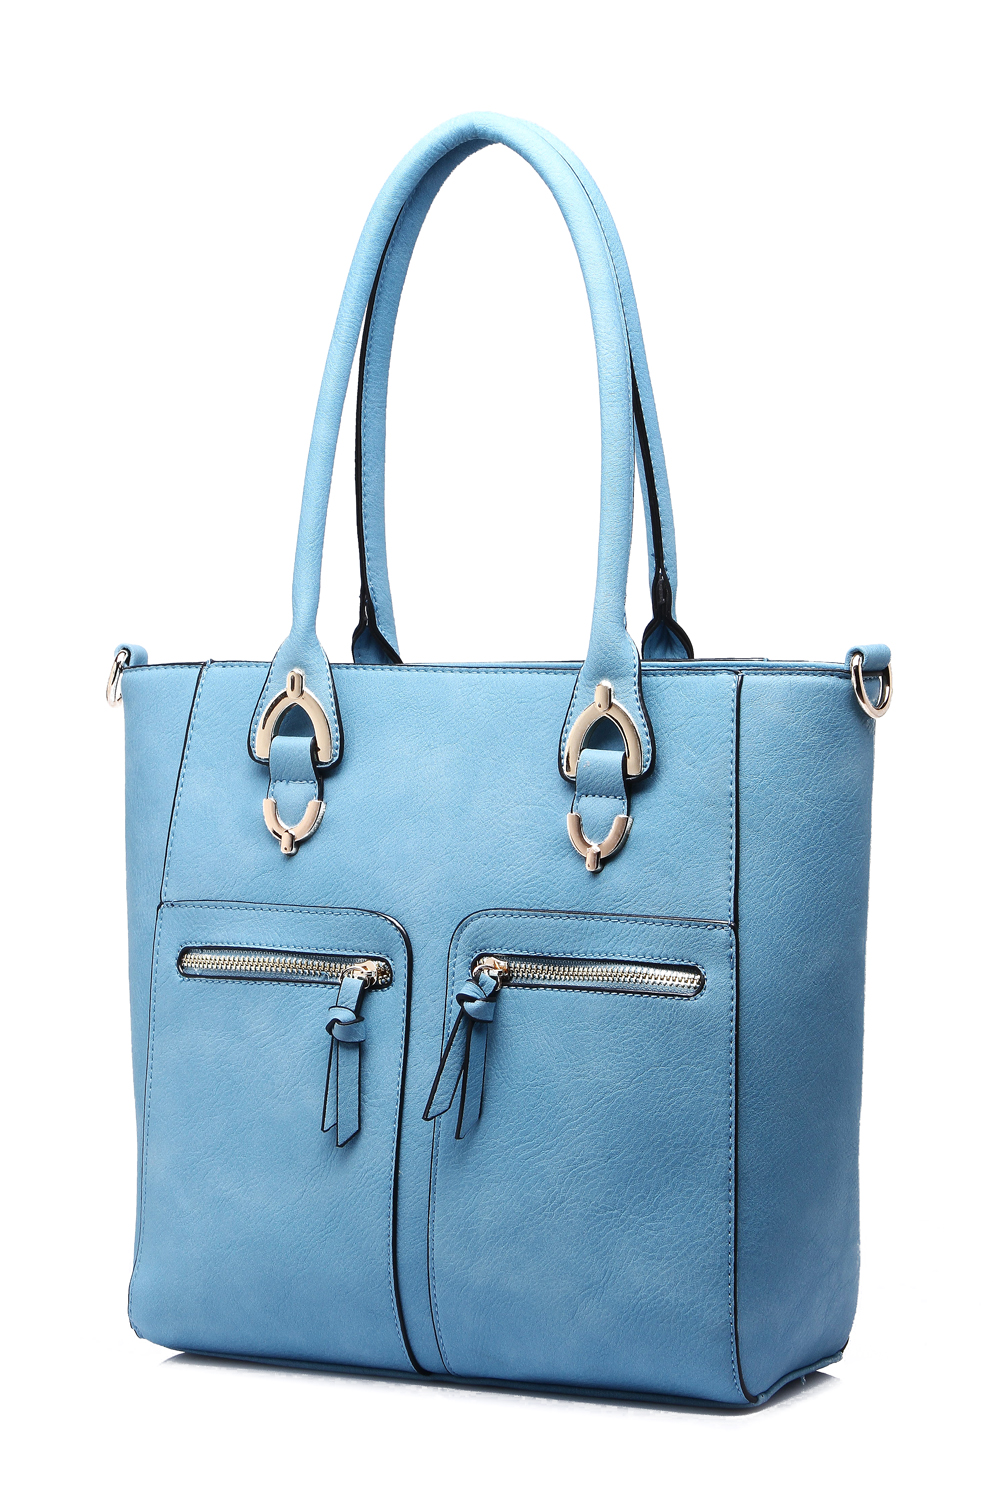 Product Description This handbag from Kate Spade New York is the perfect companion and.